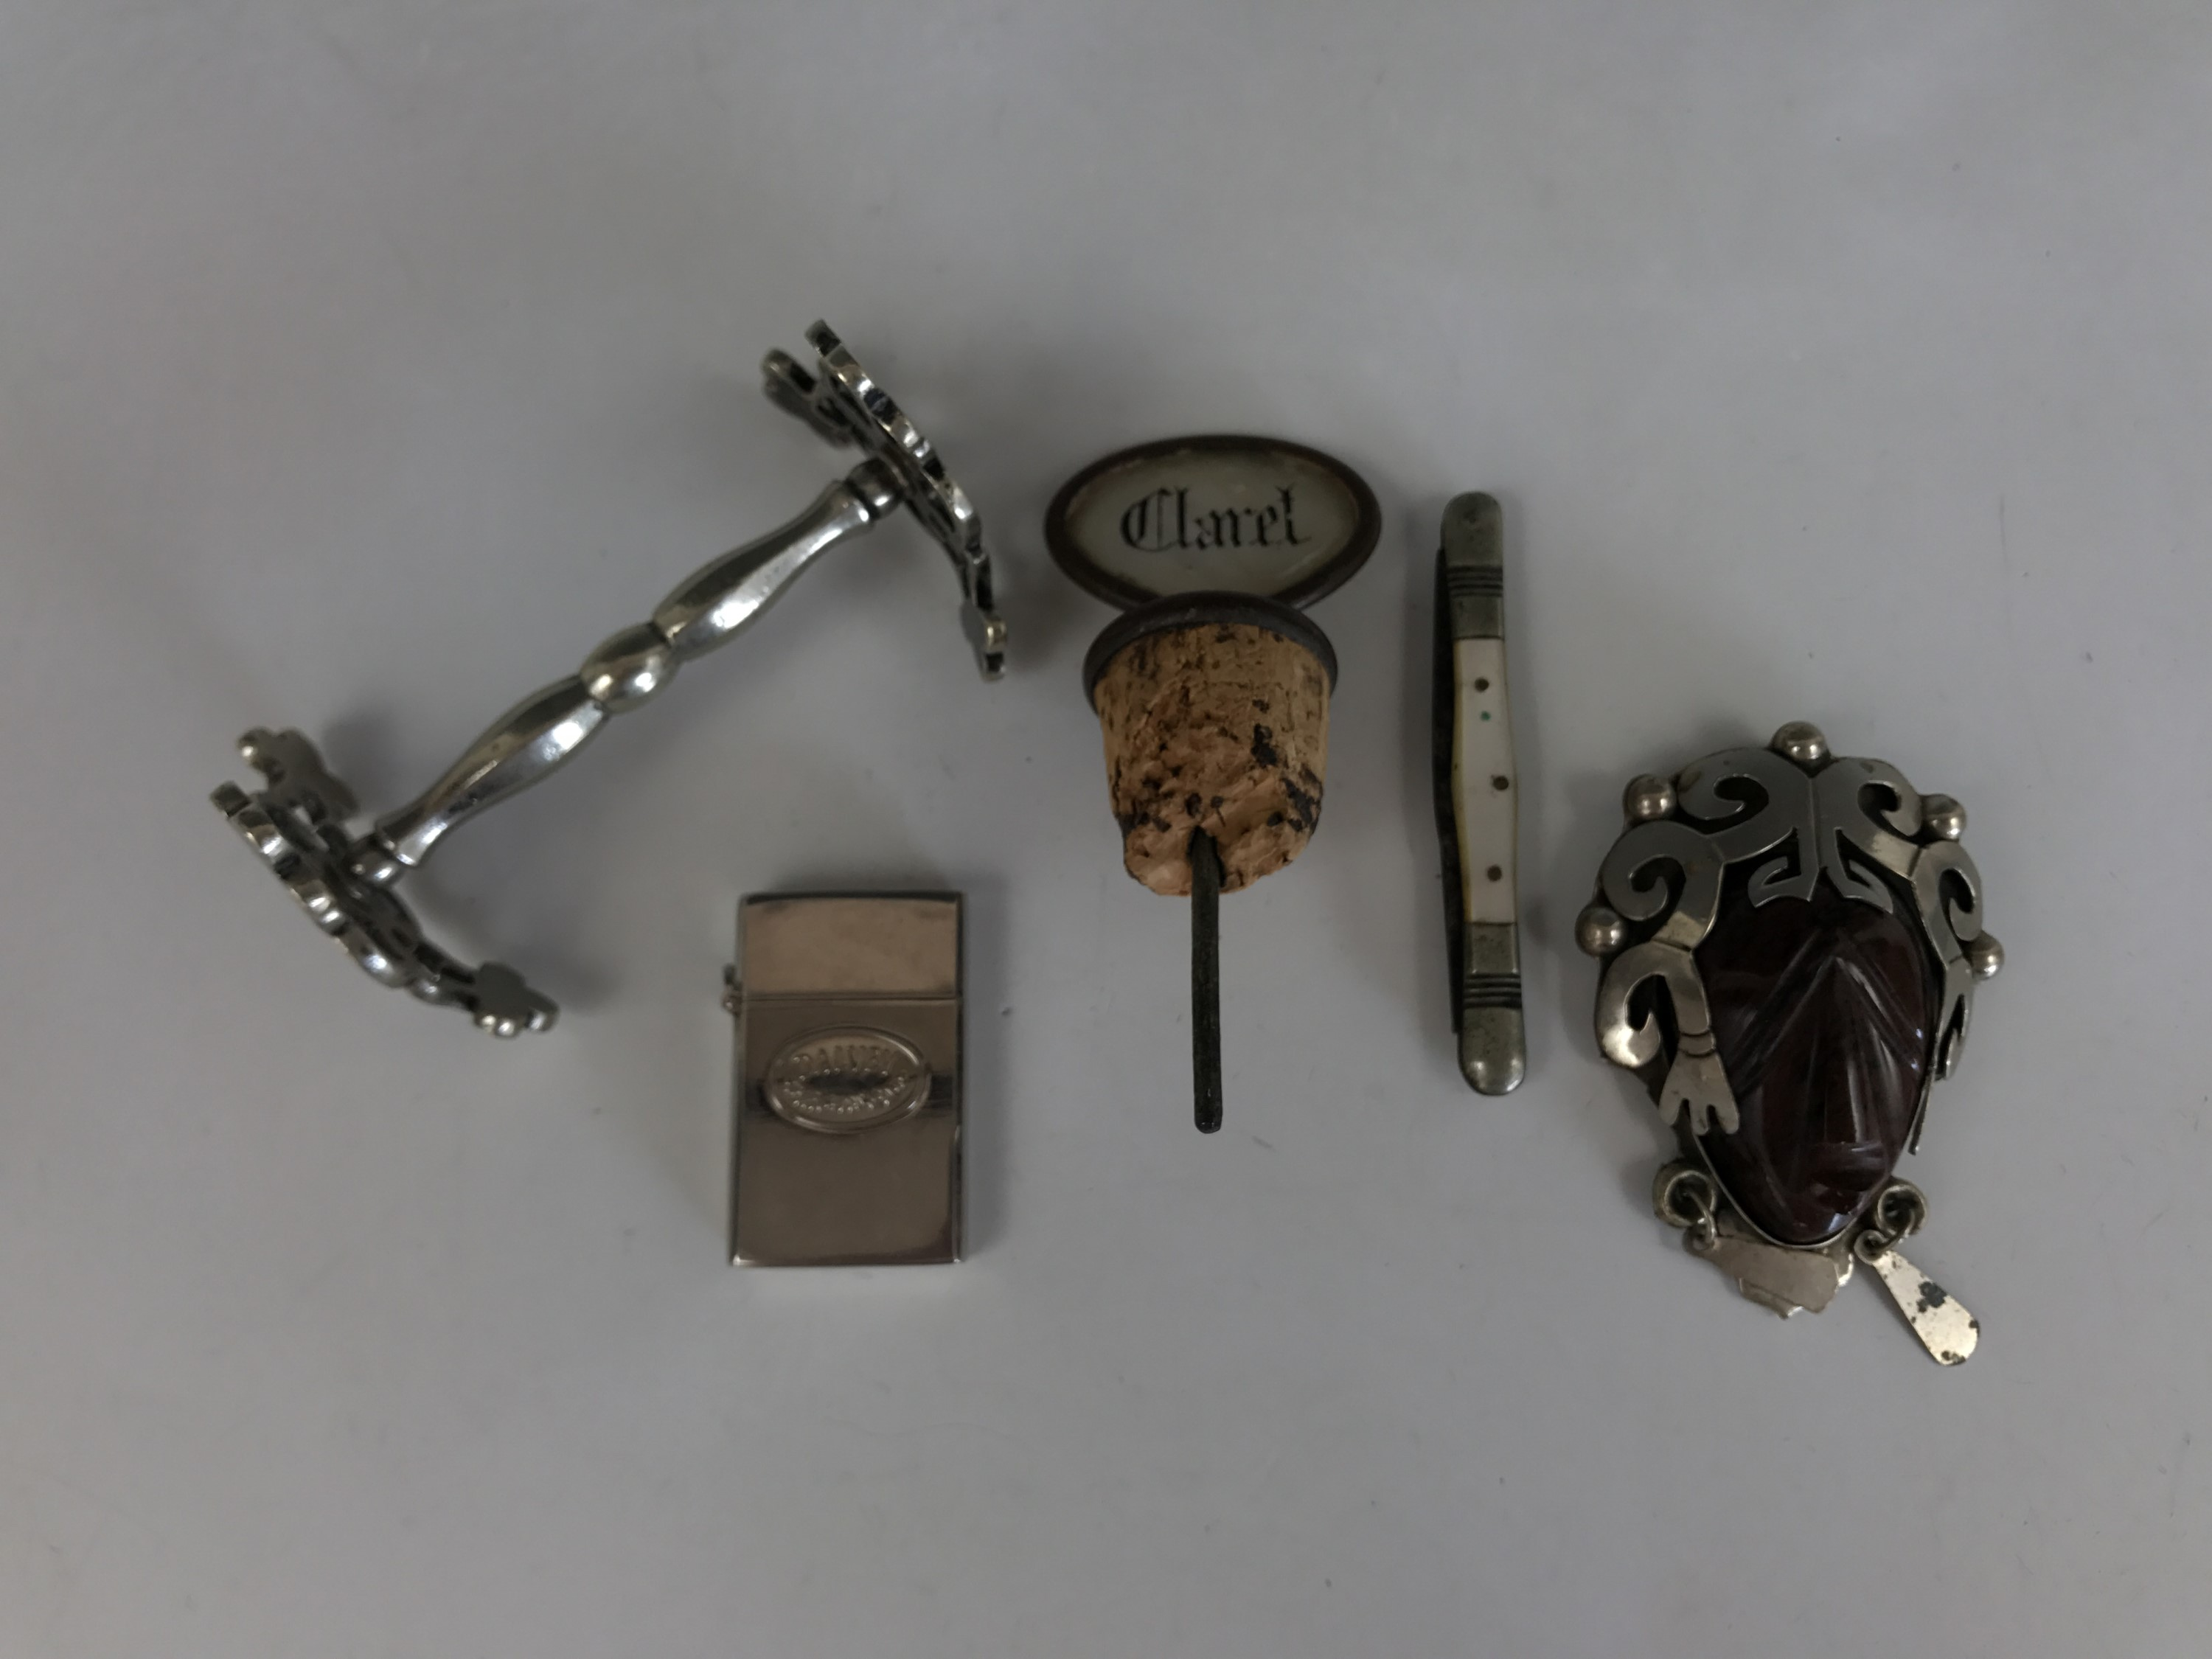 Lot 11 - Sundry collectors' items including a Victorian claret decanter stopper, an electroplate knife rest